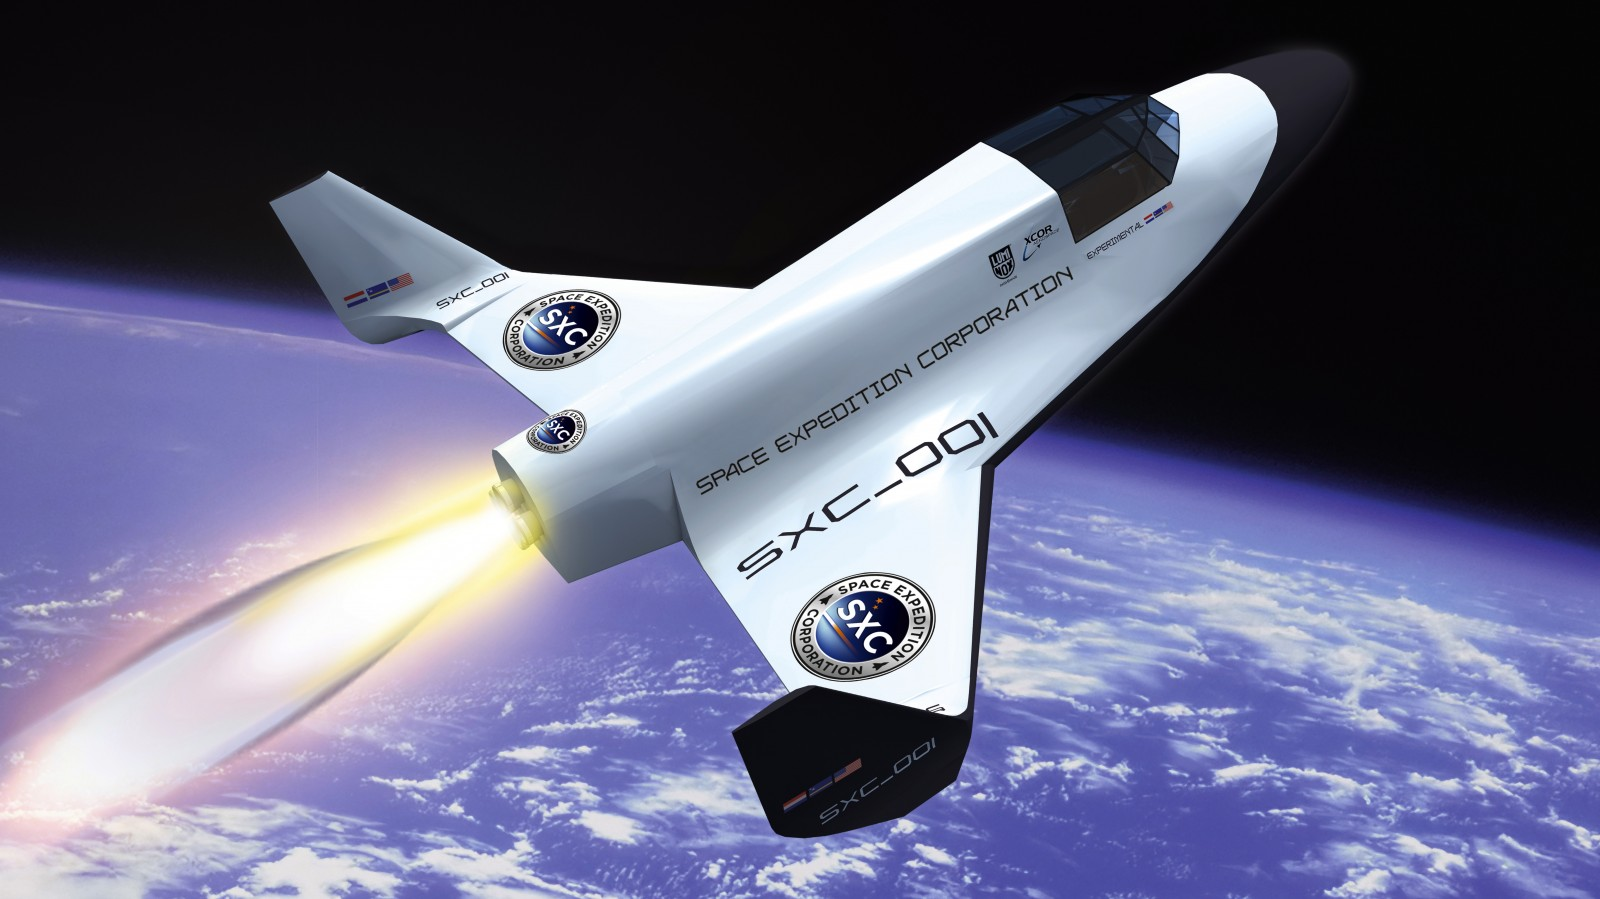 Bonnaroo Offers a Trip to Space with New Fundraiser